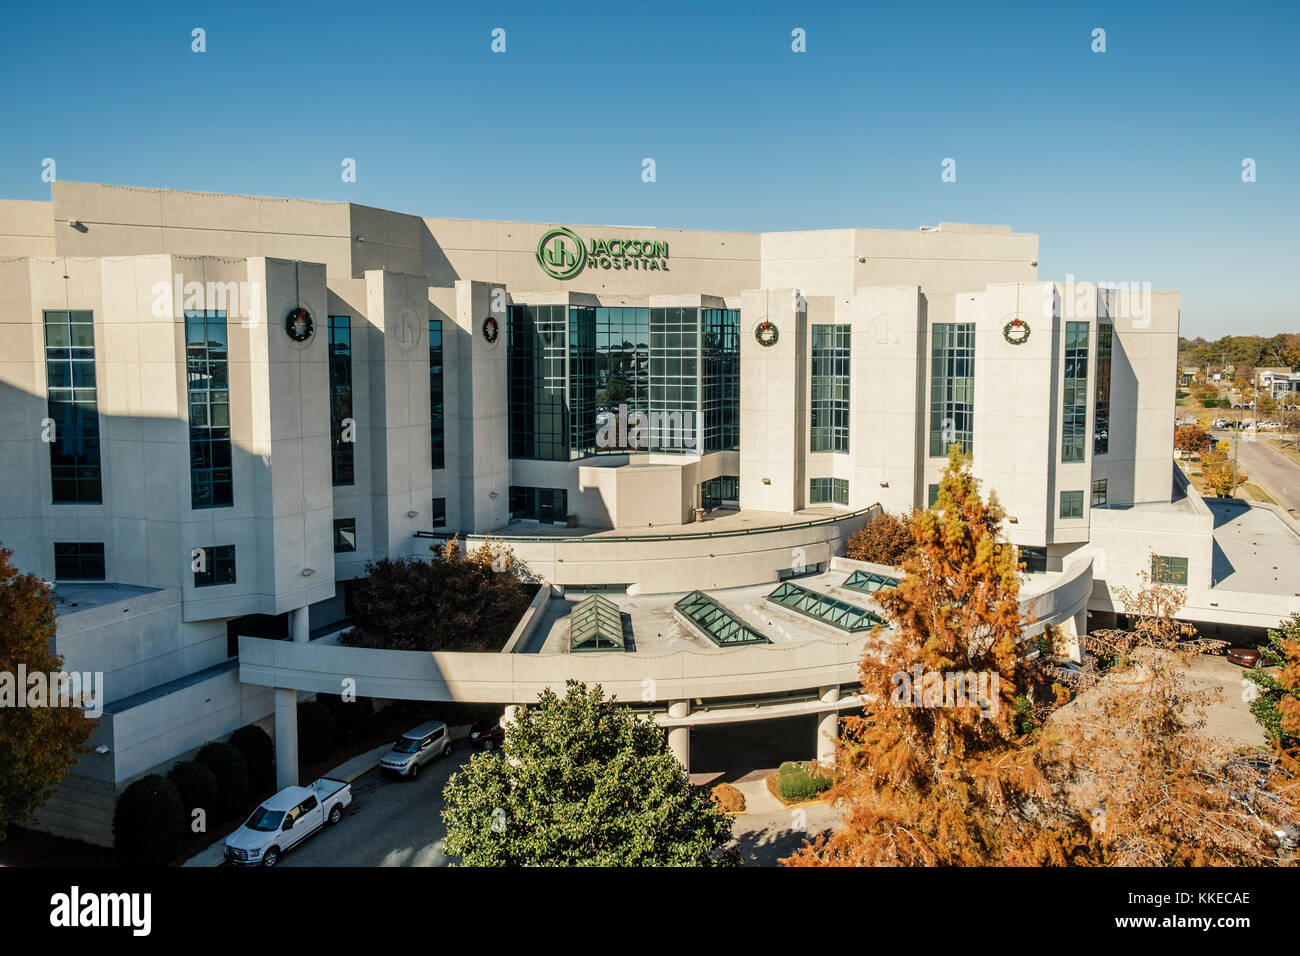 Jackson Hospital exterior, front view; a large medical and health care facility in Montgomery, Alabama USA. - Stock Image